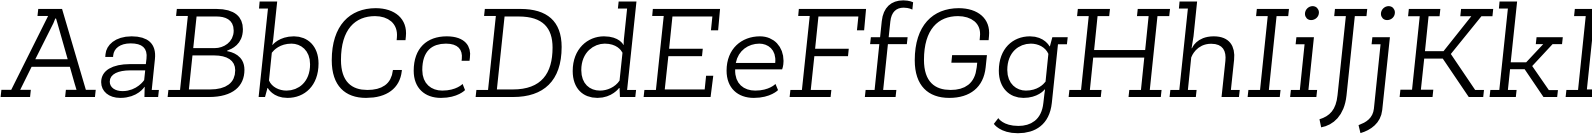 Newslab Light Italic